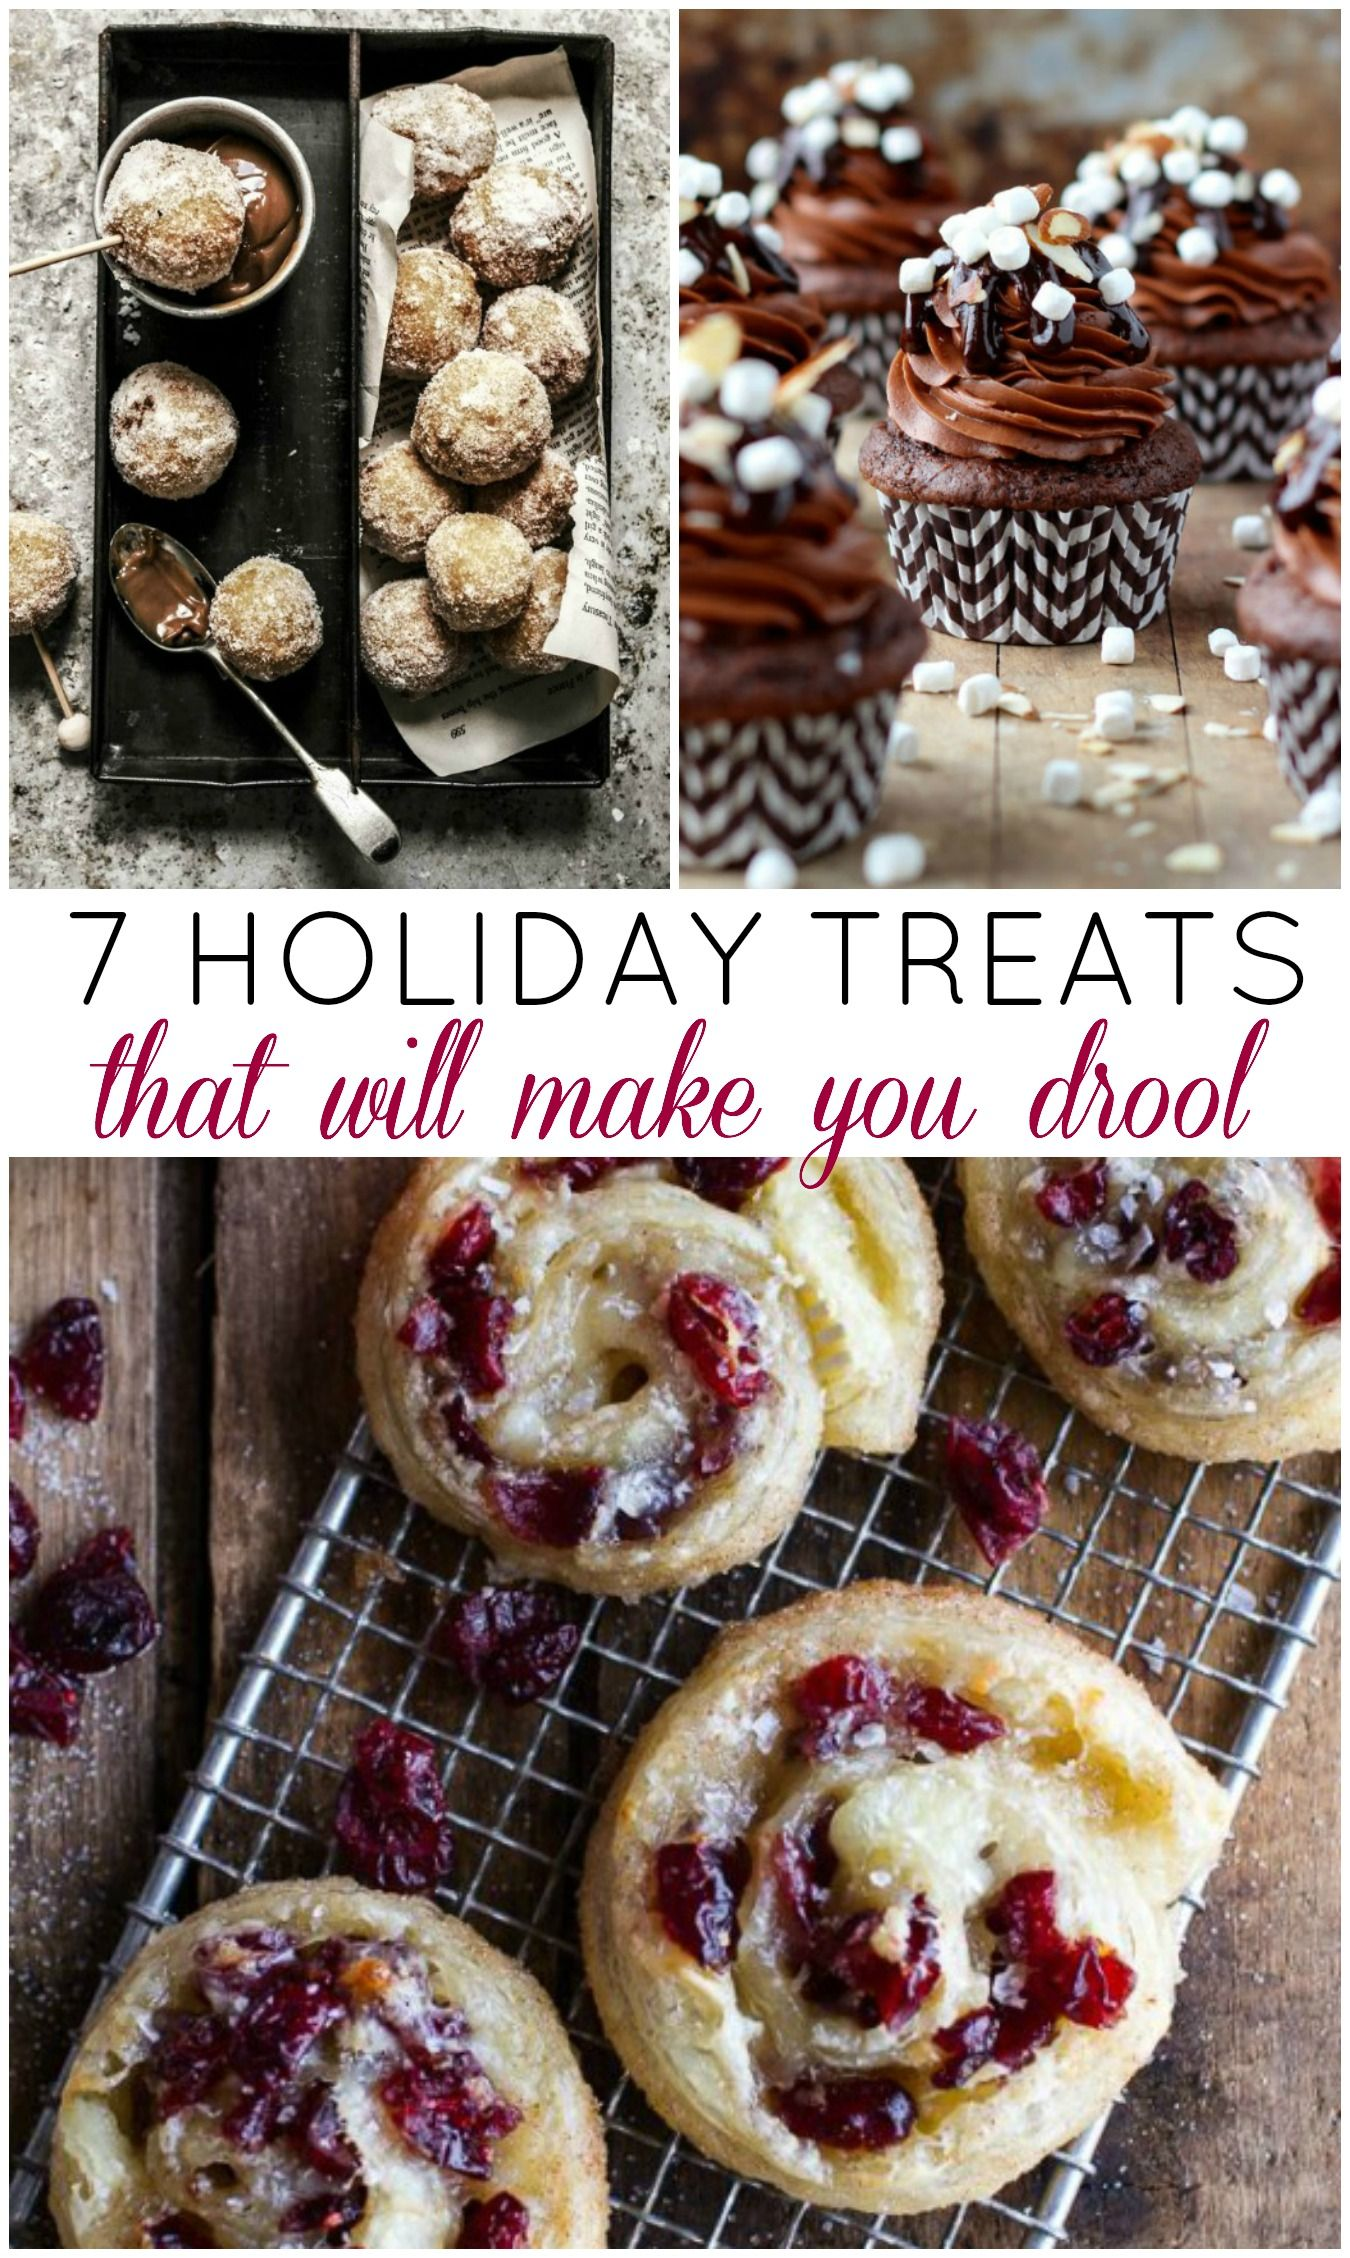 7 Yummy Holiday Treats to Make This Year - Recipes